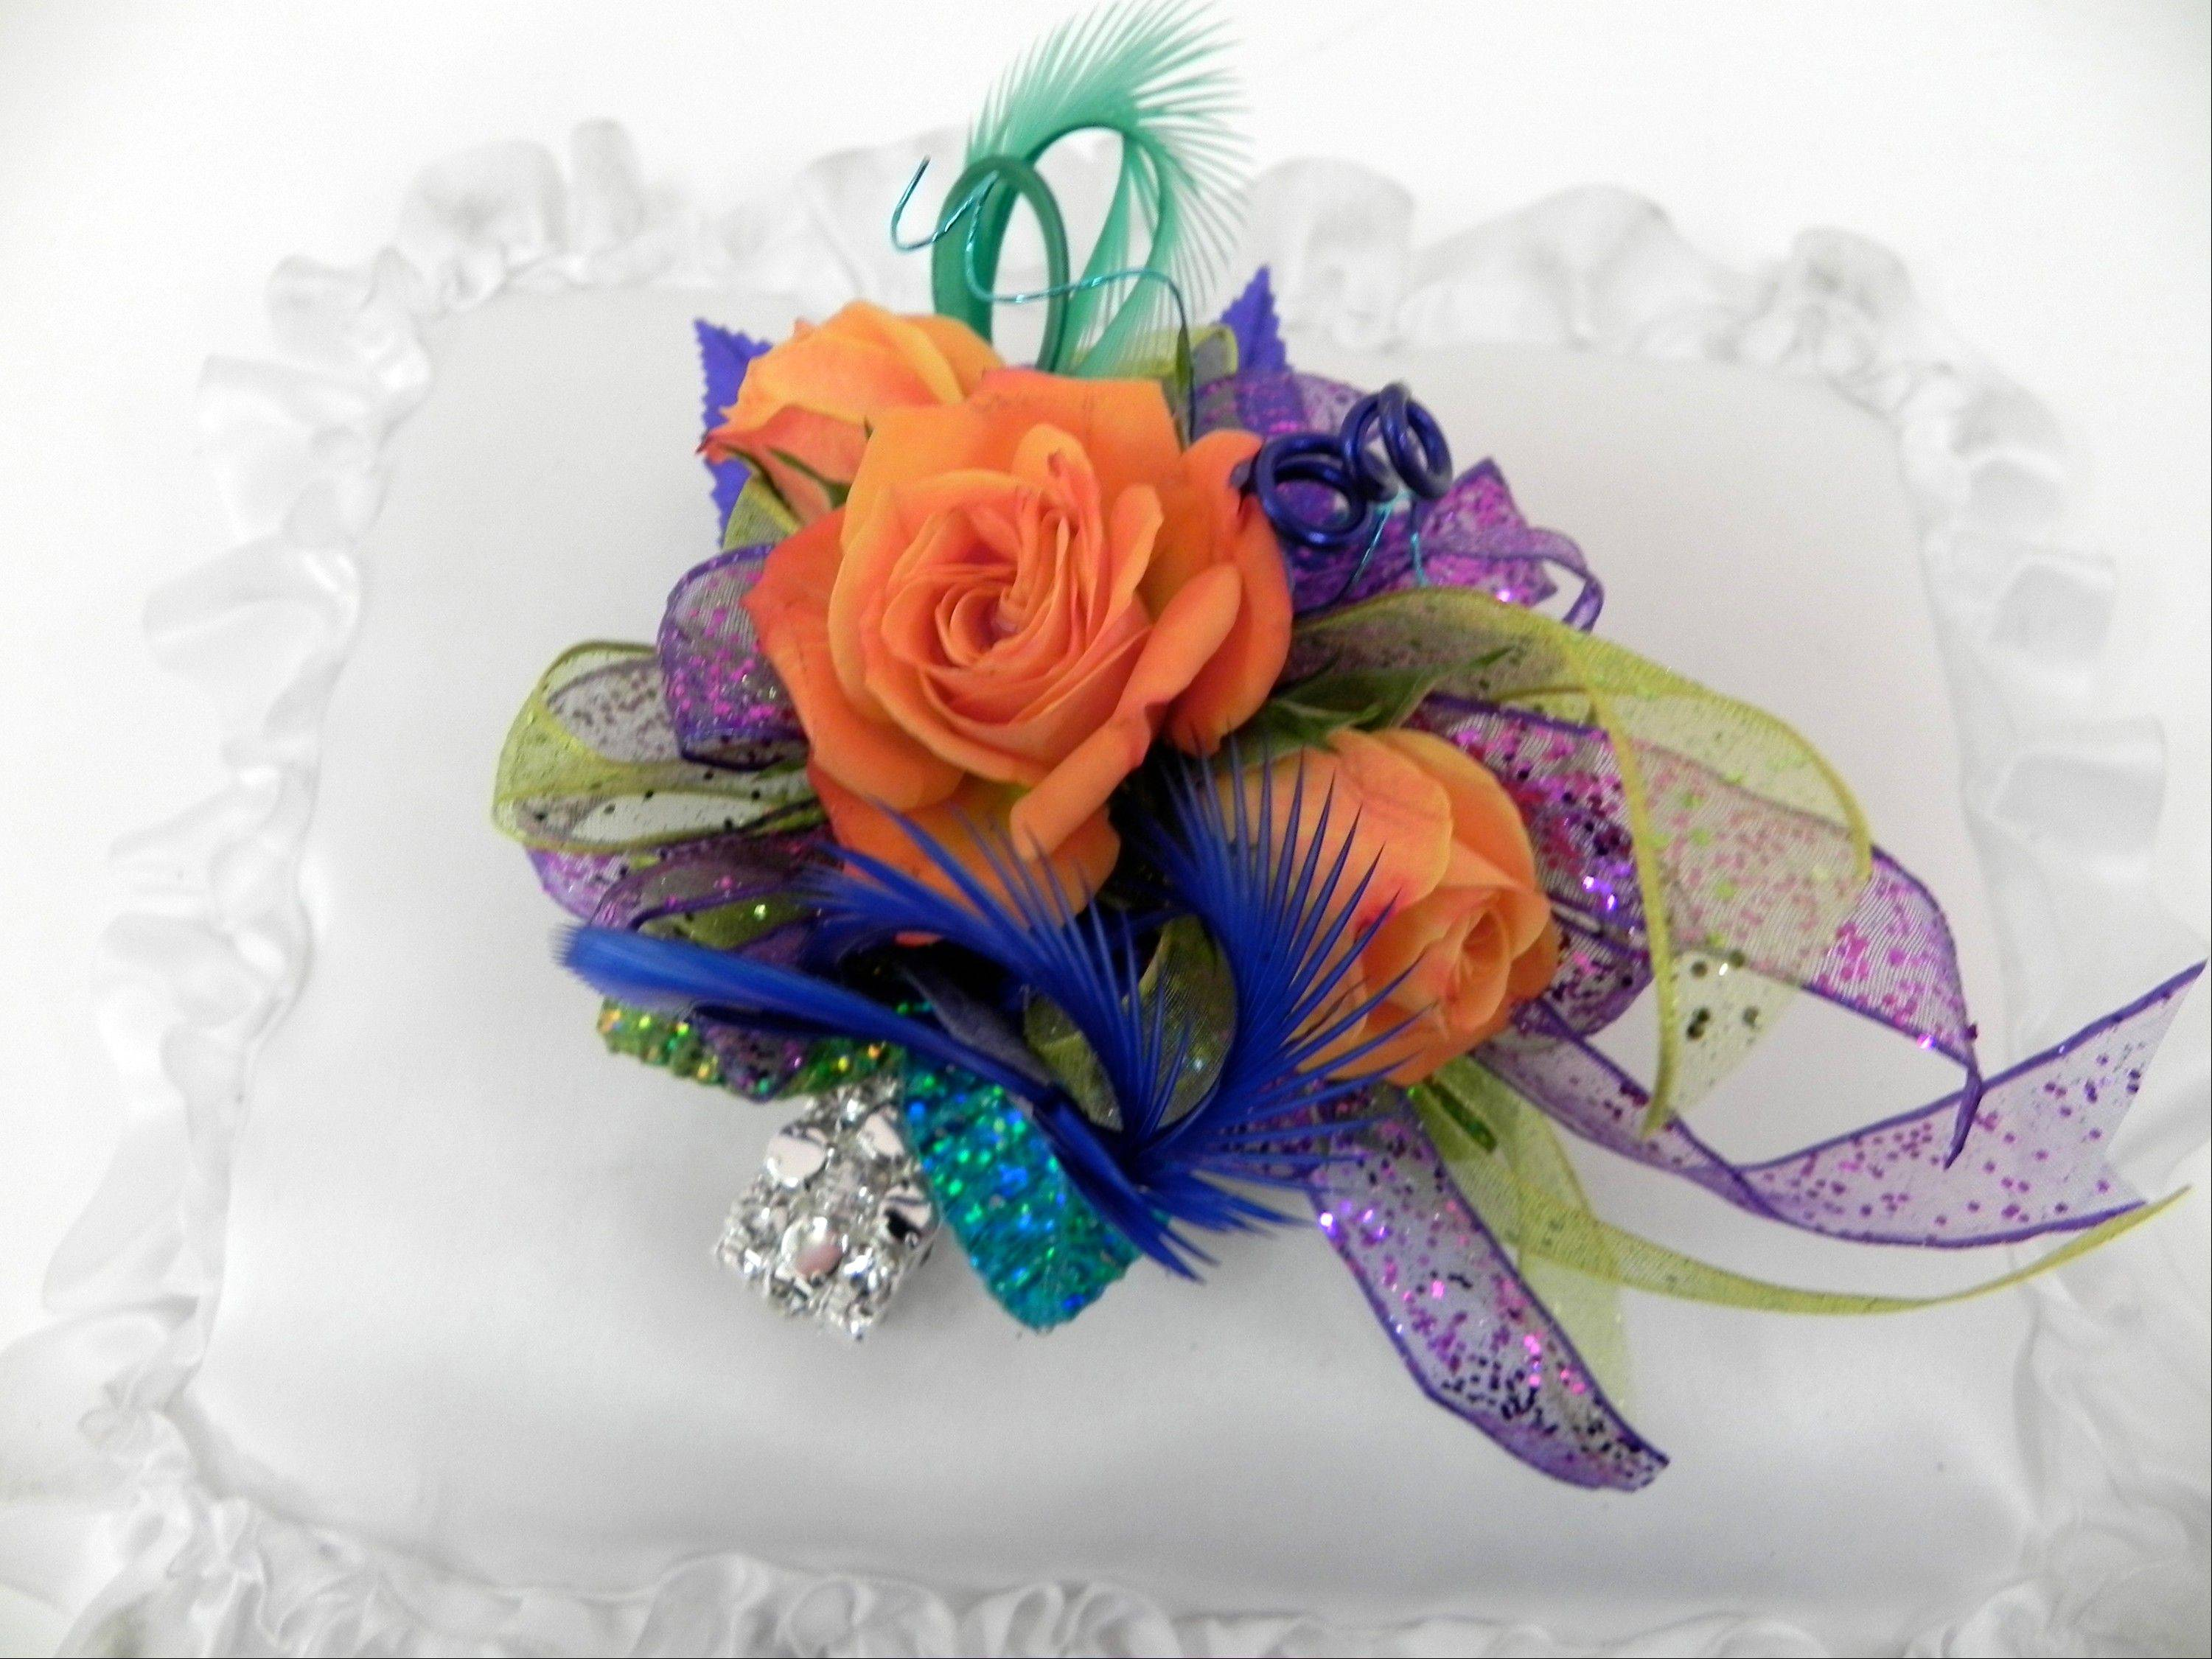 The Pandora corsage is designed with three orange sweetheart roses, purple and lime green glitter ribbon, blue and sea foam green feathers, blue, turquoise and green silk leaves, and blue and green wire on a Fitz Design Bracelet called RockStar Dazzle.